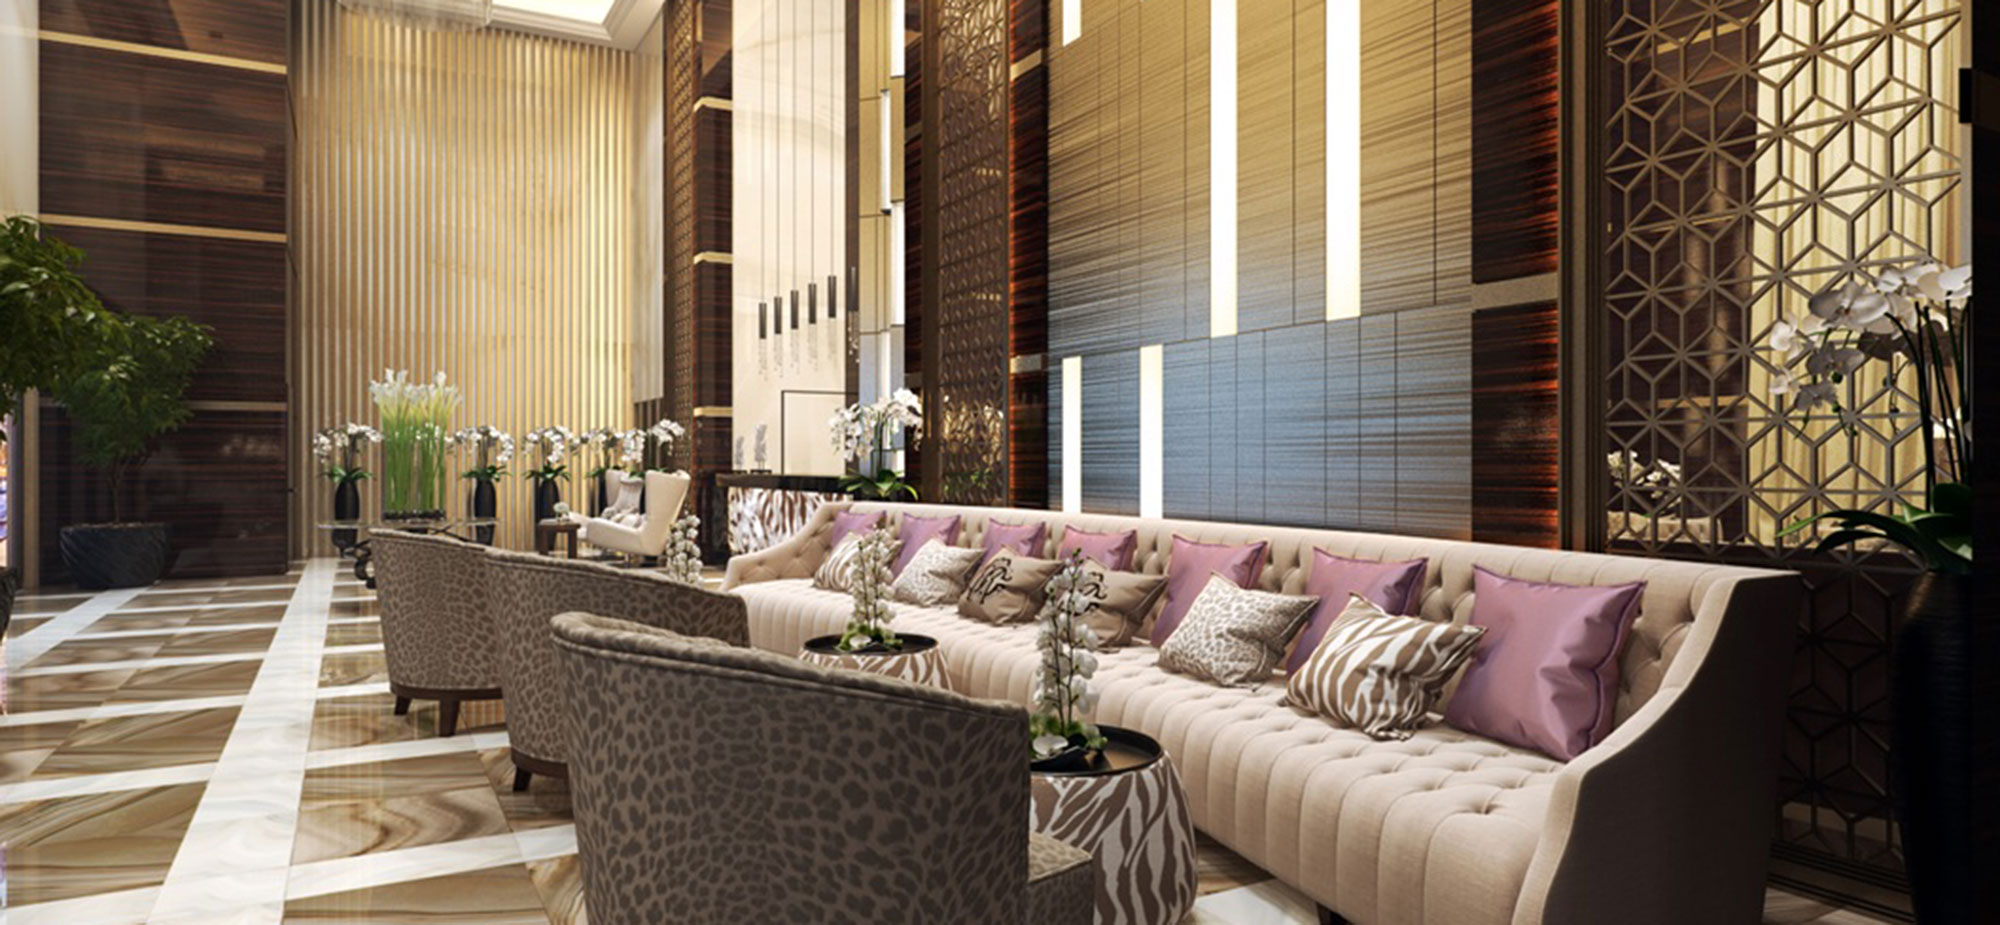 The B Premiere Hotel, Centara Boutique Collection